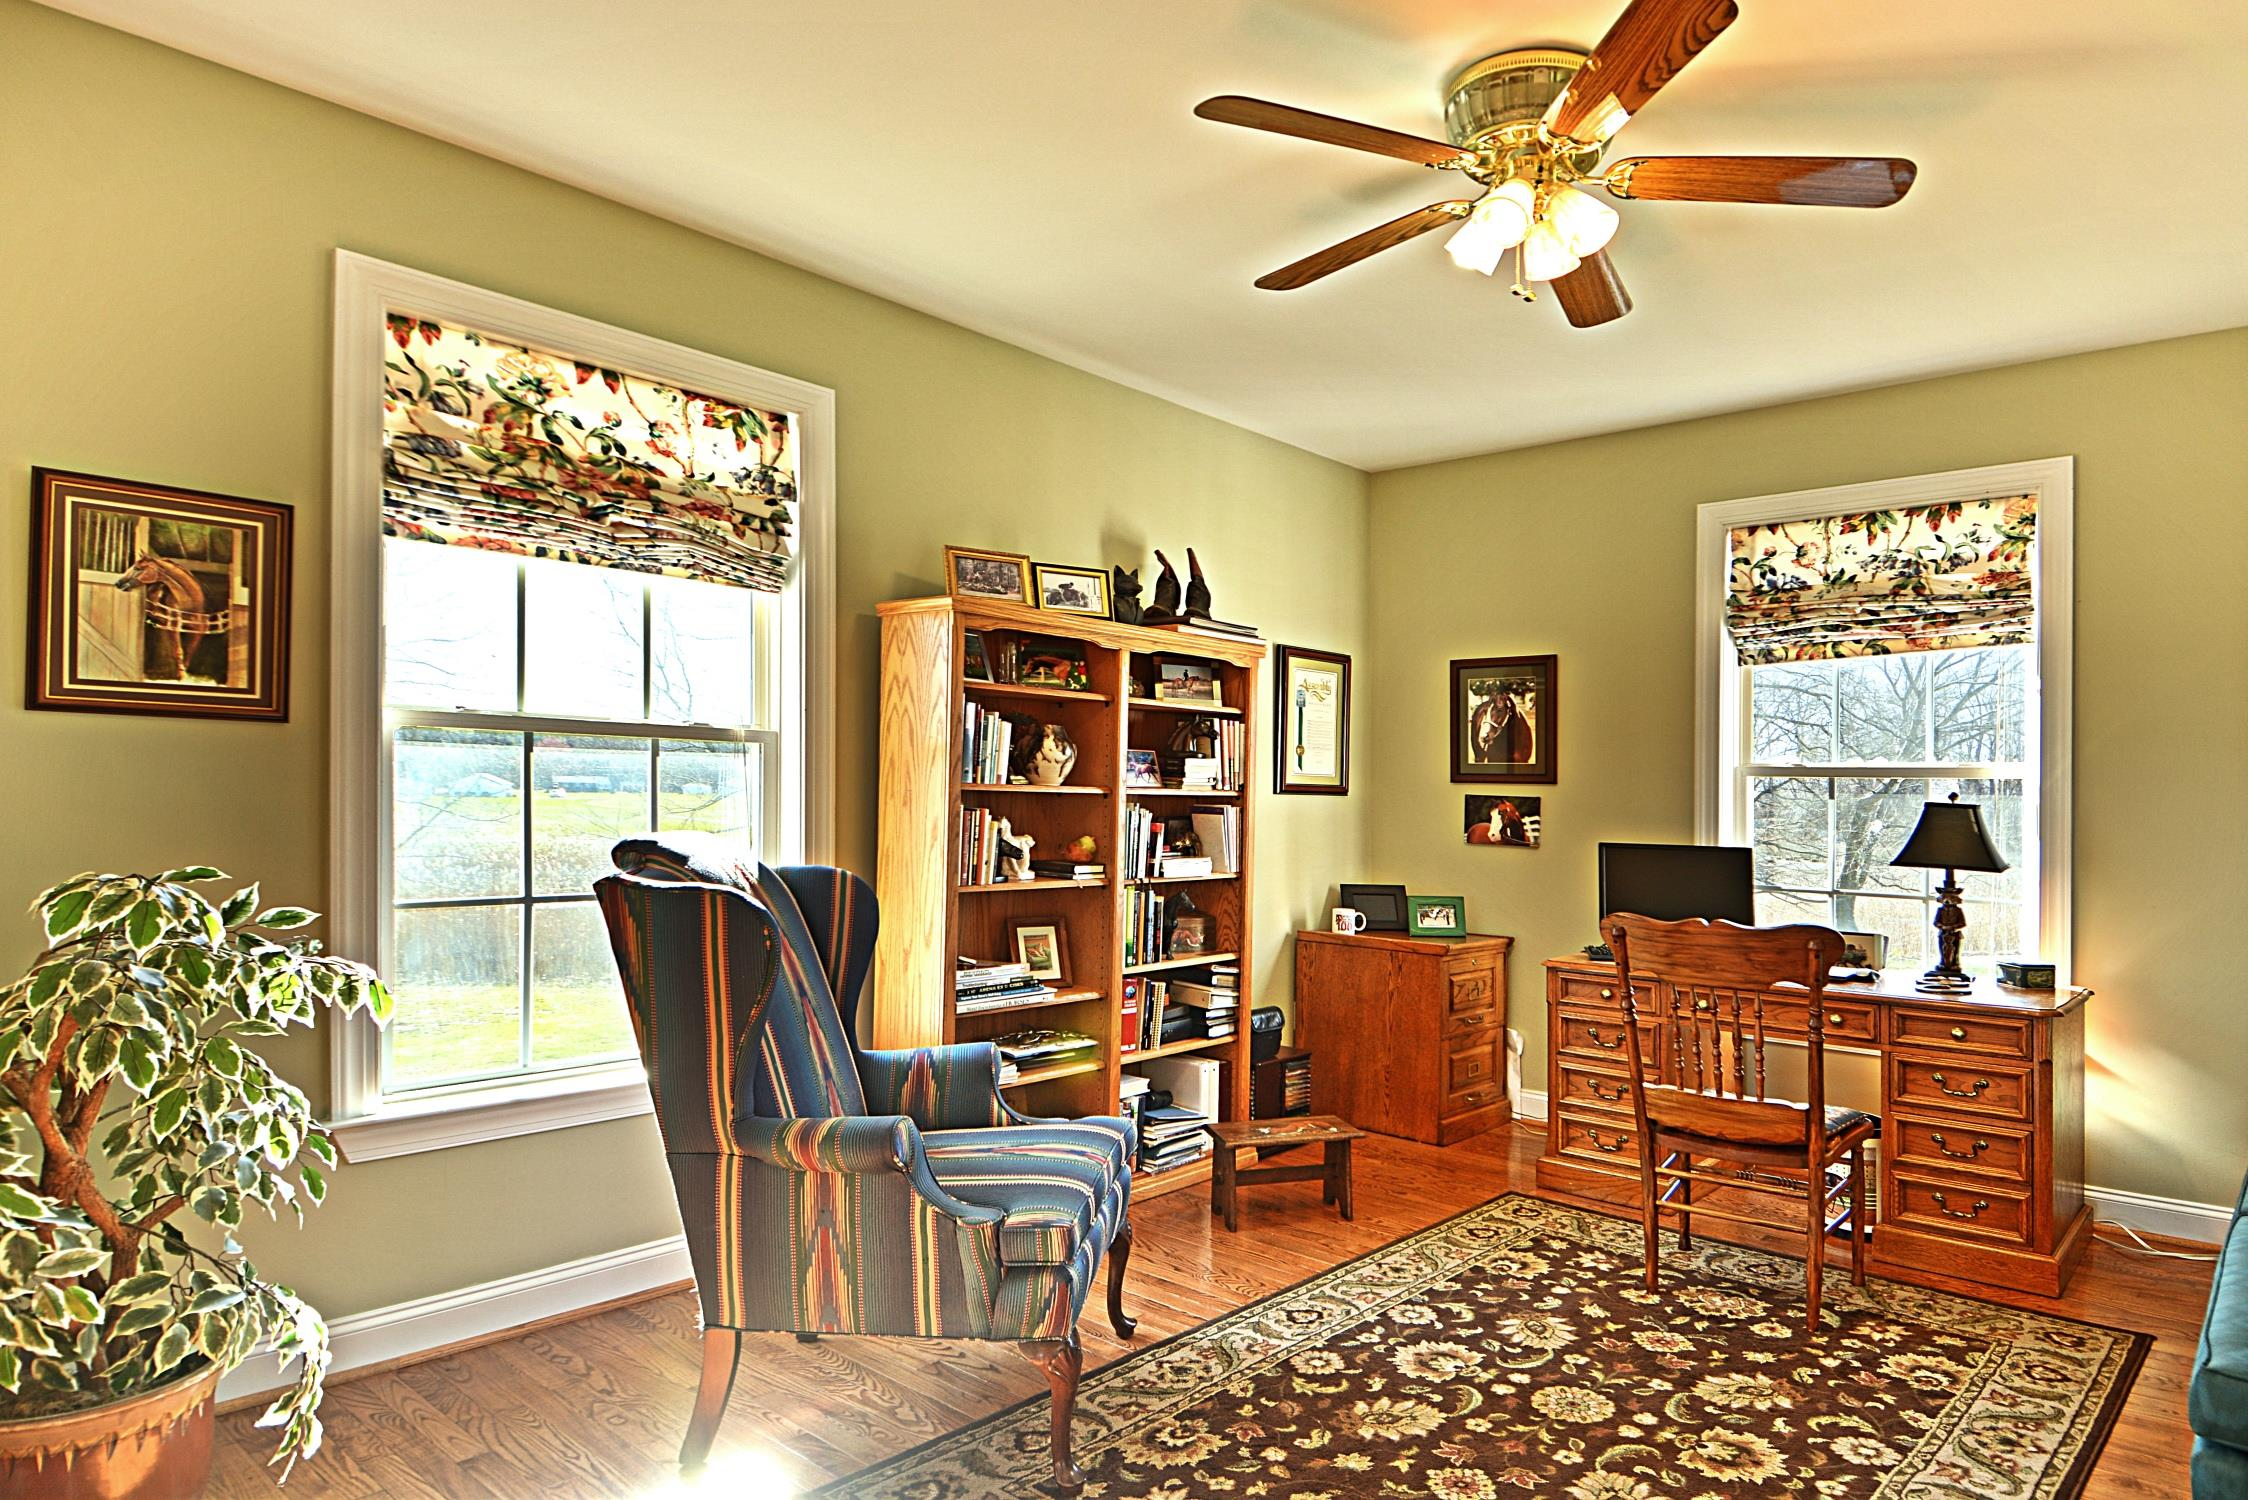 Marie Lally presents another beautiful horse property in Saint mary's county md!  Lovely library / office in this Bushwood home located at21581 Montfort Rd in Saint marys county md!